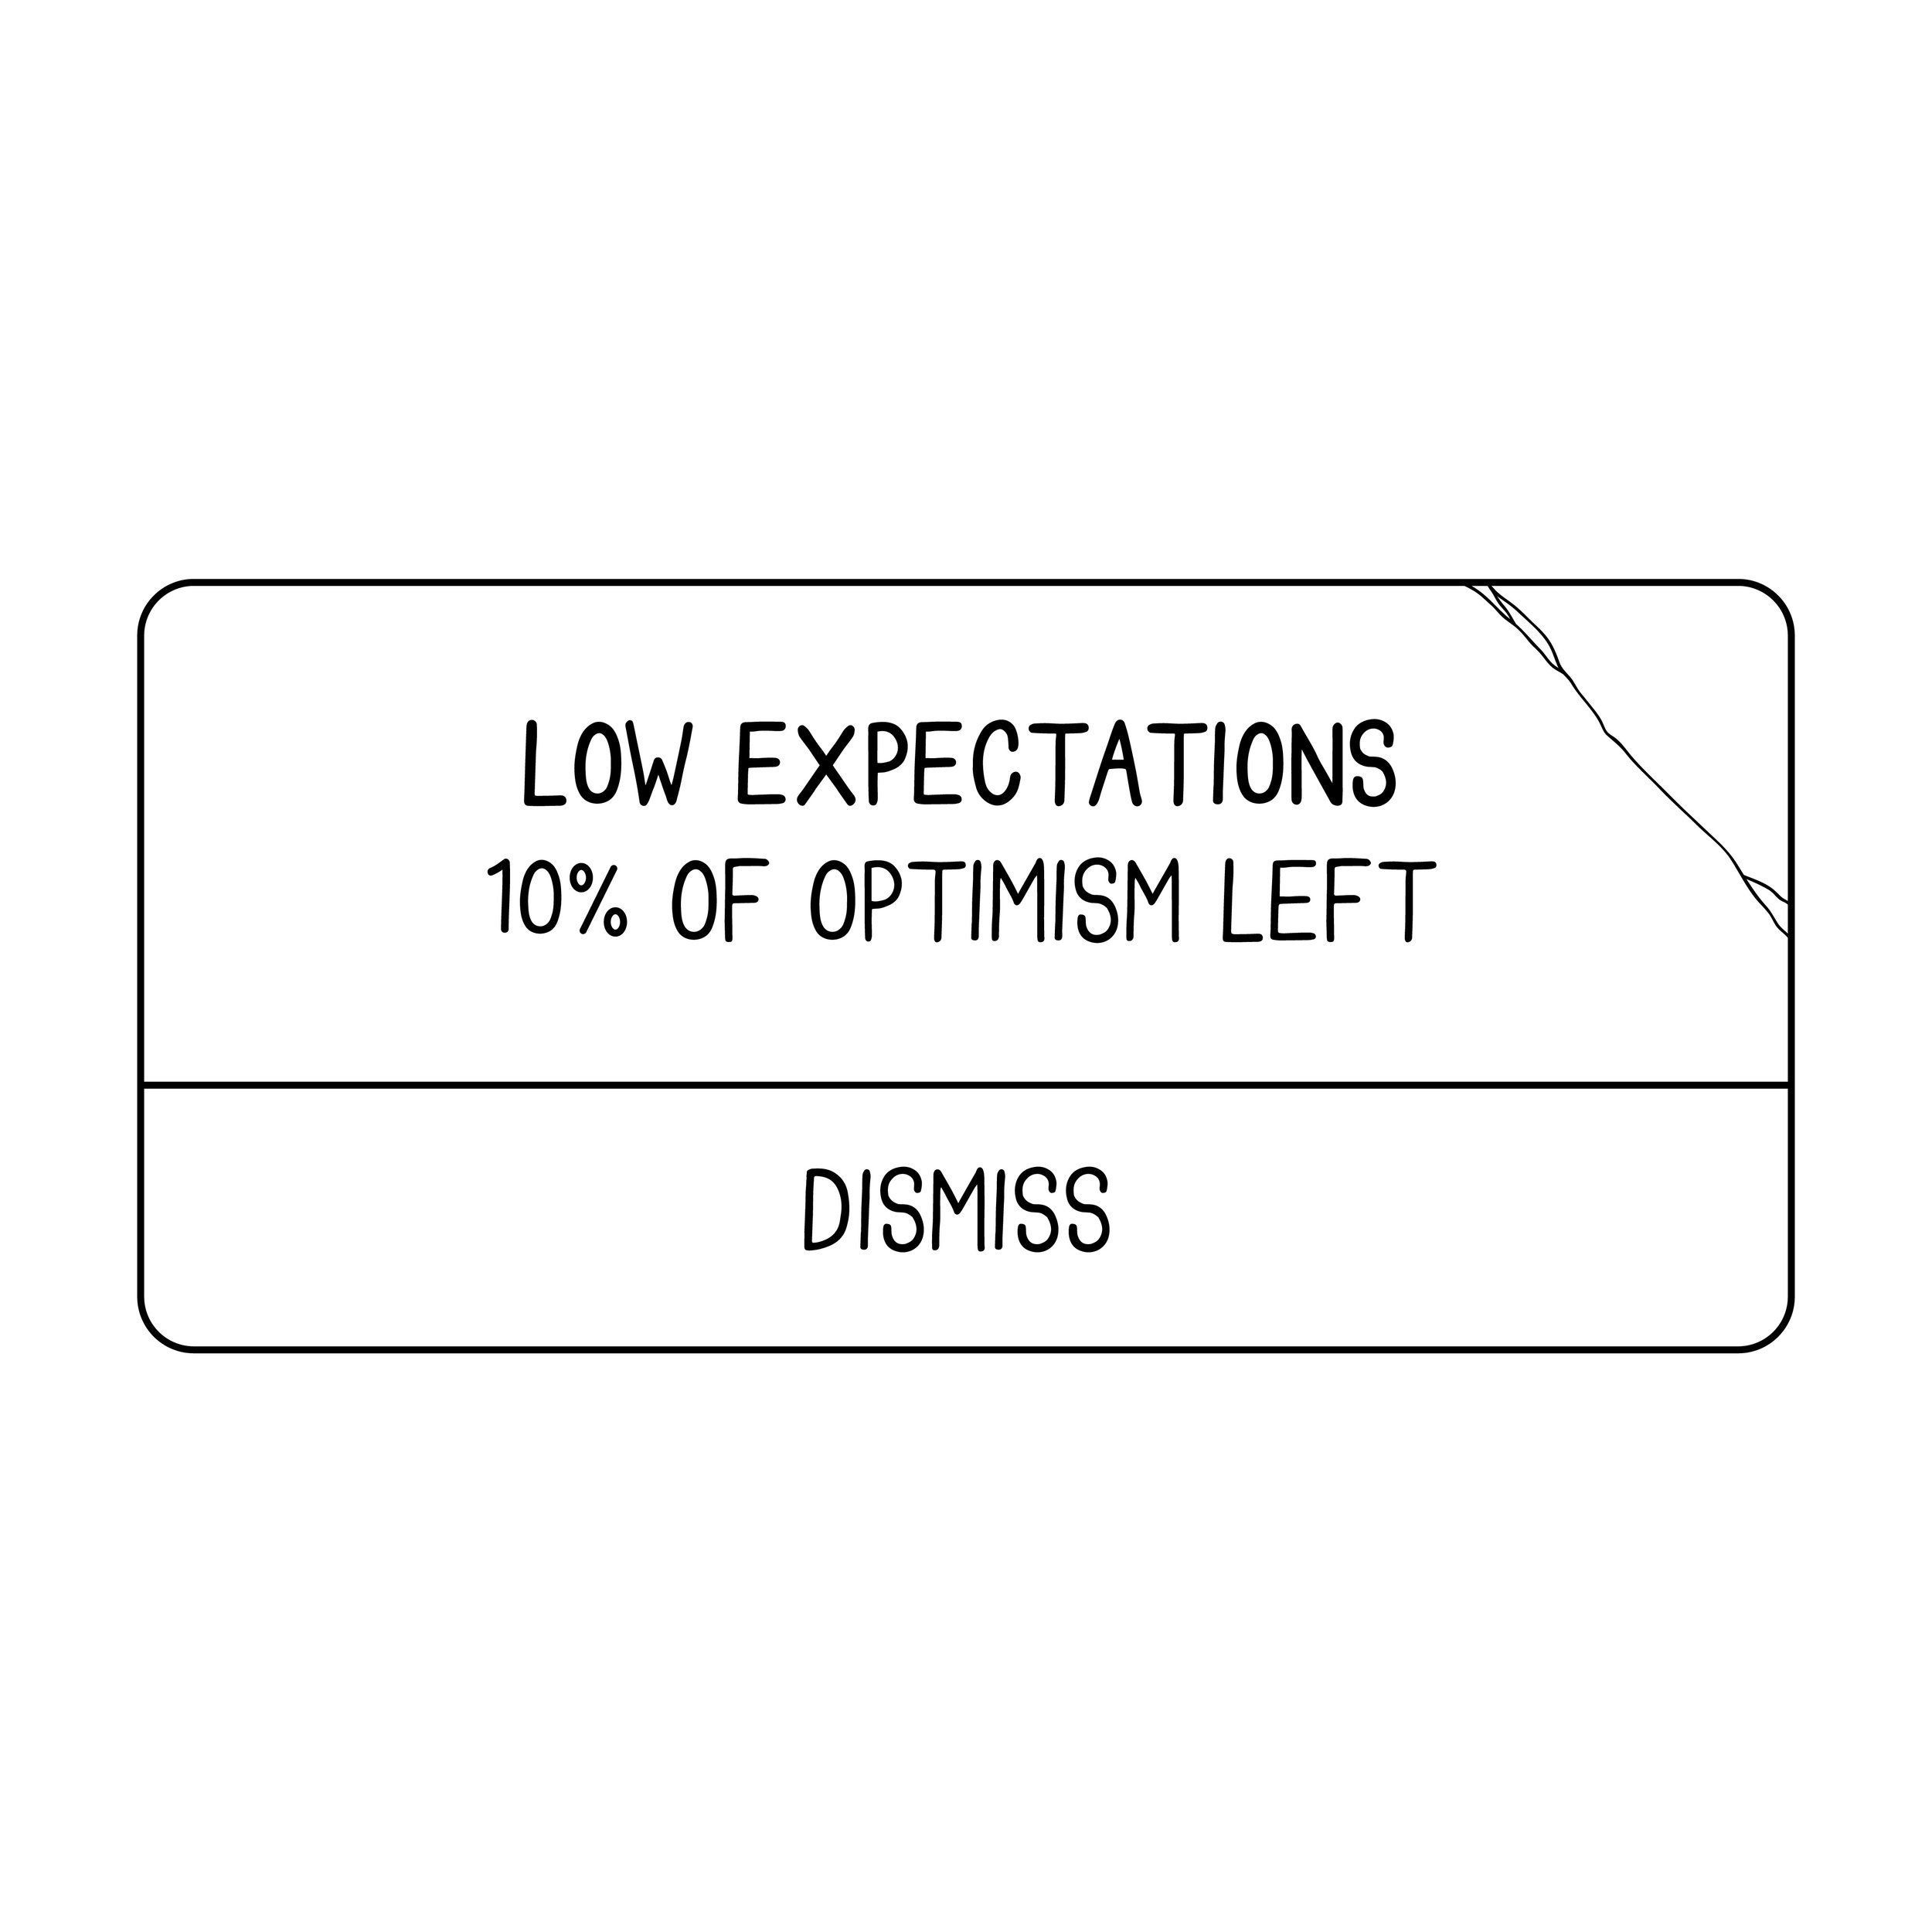 lowexpectations-01.jpg